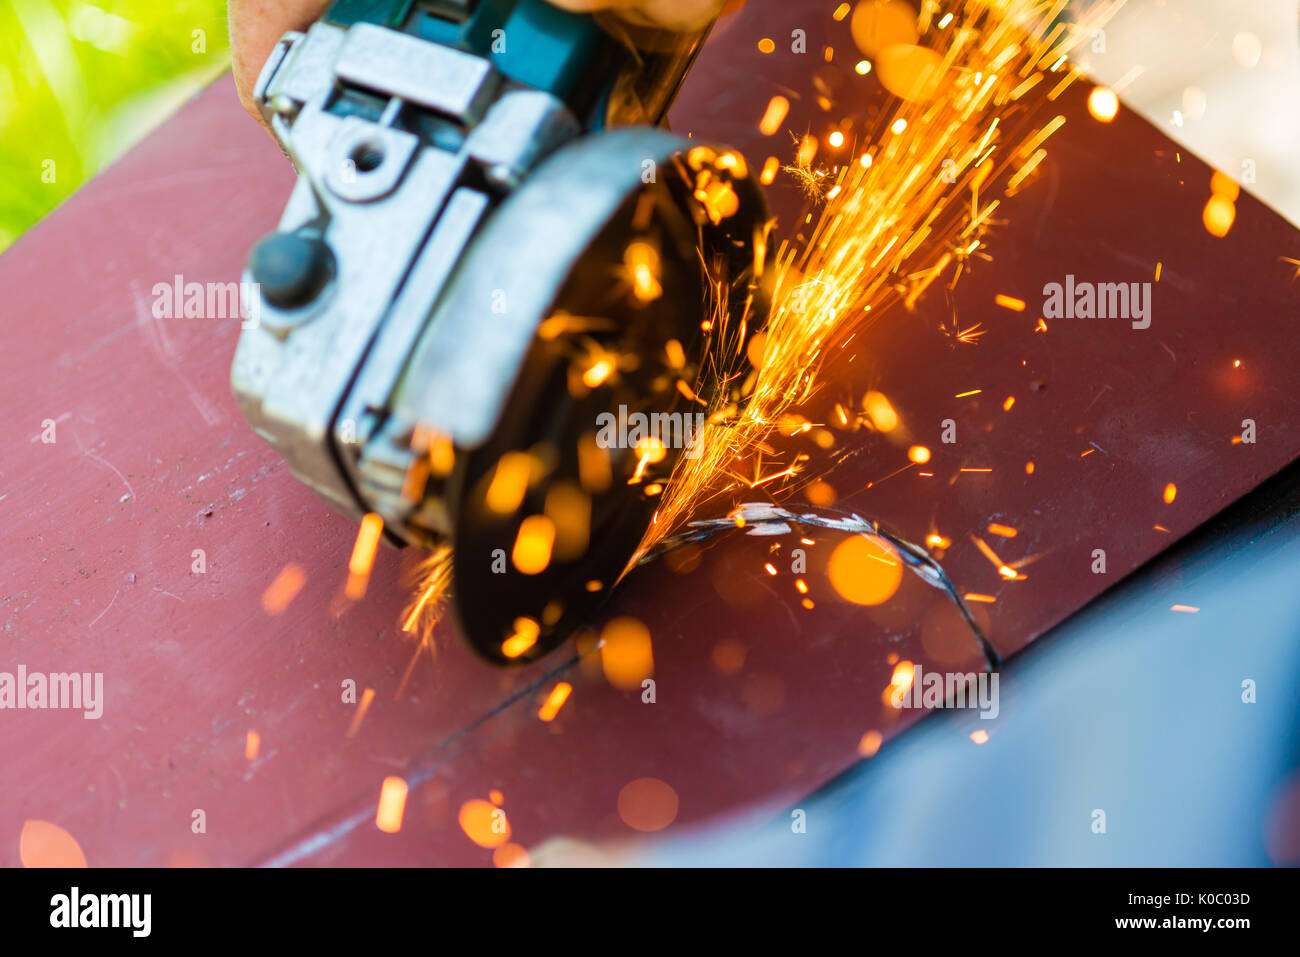 metal sawing with angle grinder close up - Stock Image